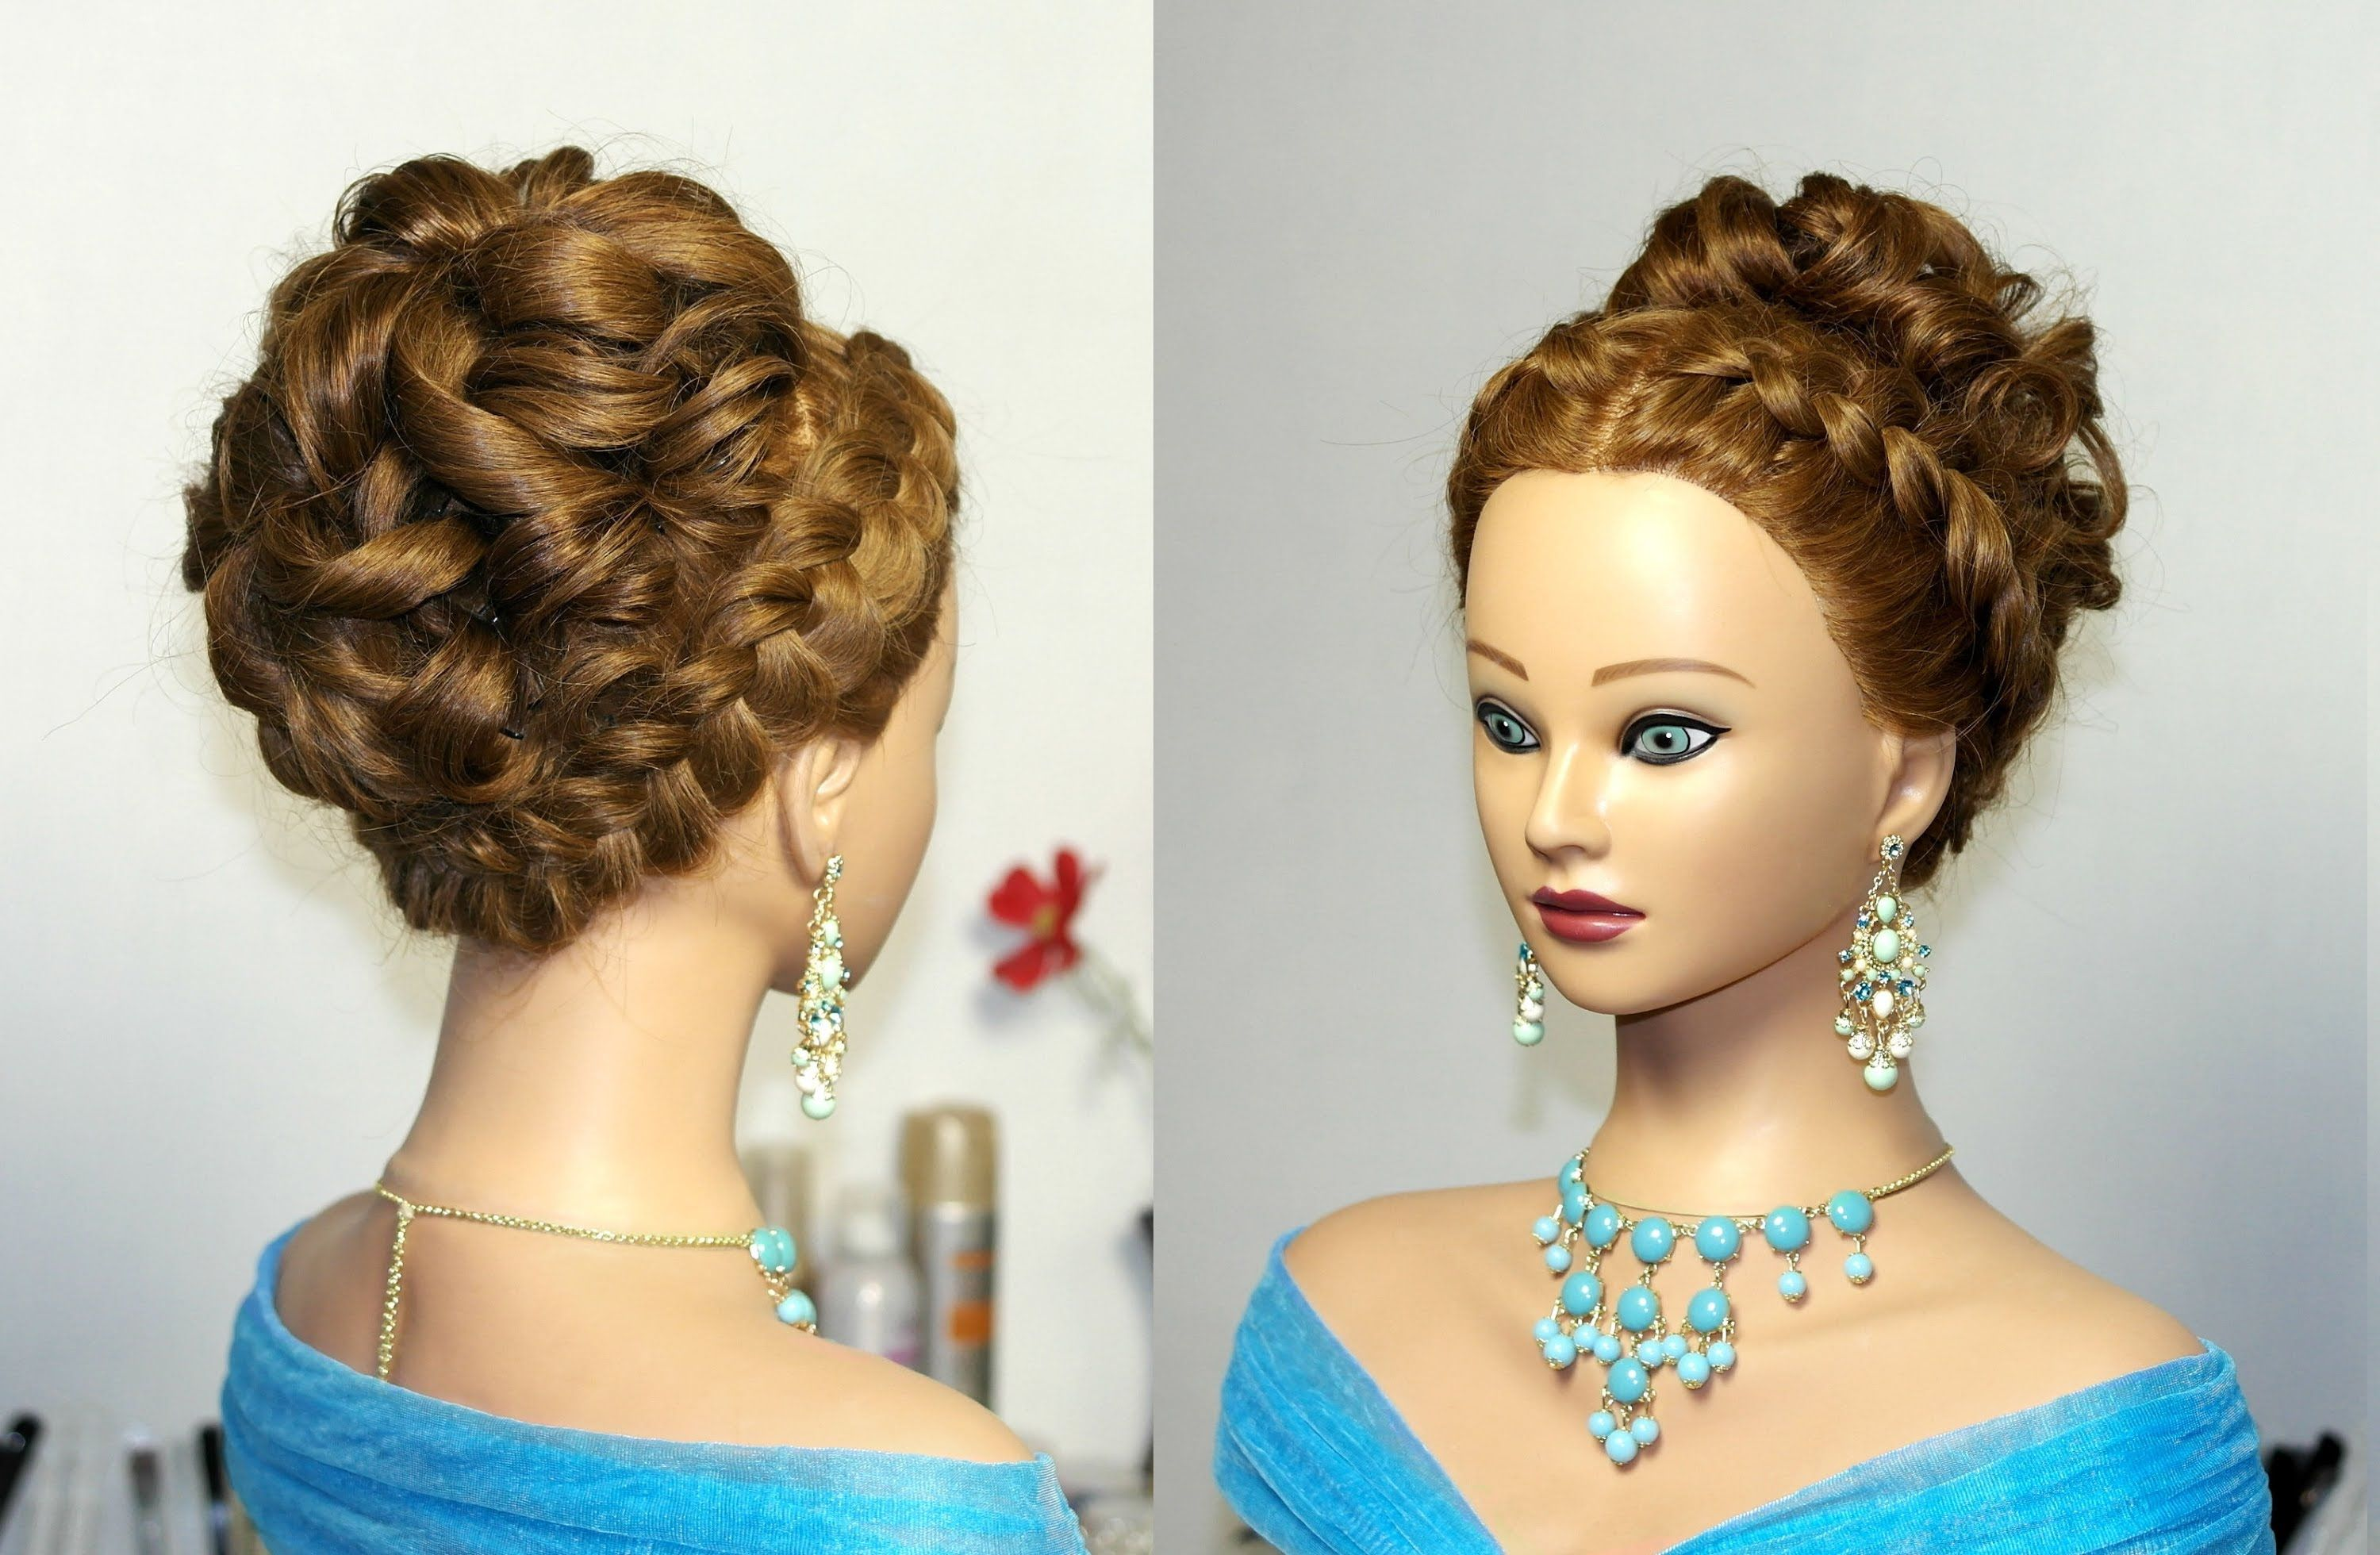 Wedding prom hairstyle for long hair. Updo hairstyles. | Hair ...